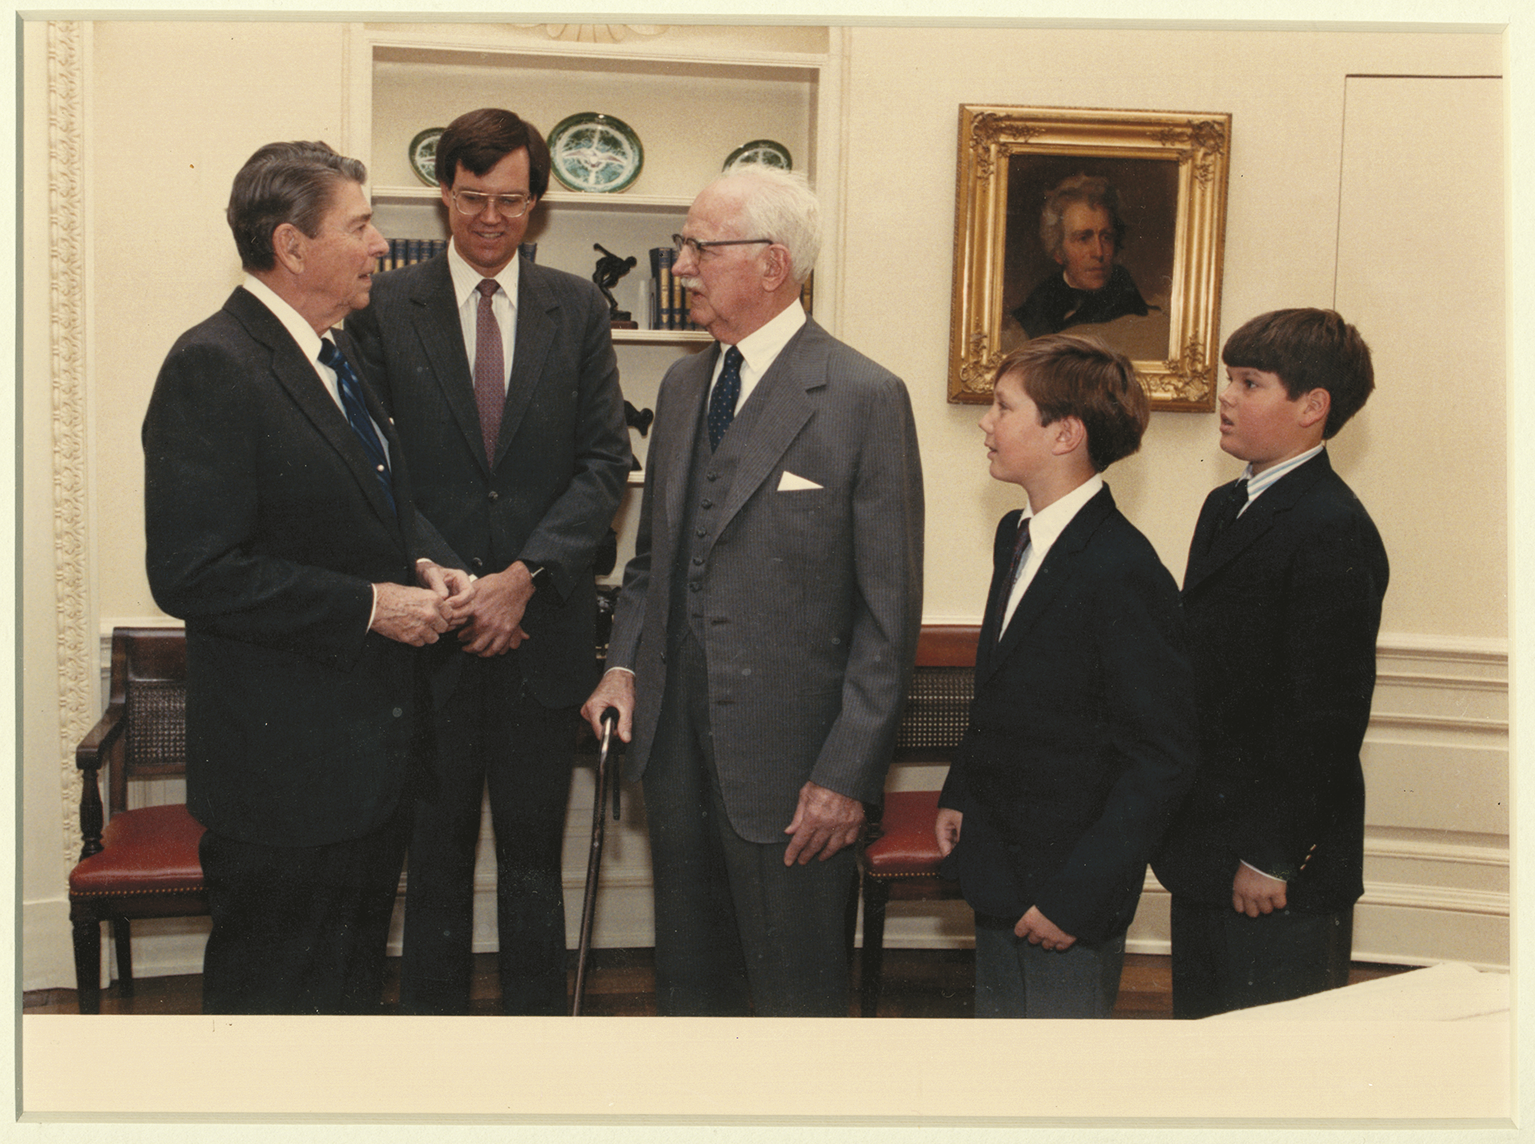 In 1988 Jack Hume Center Visited President Ronald Reagan In The